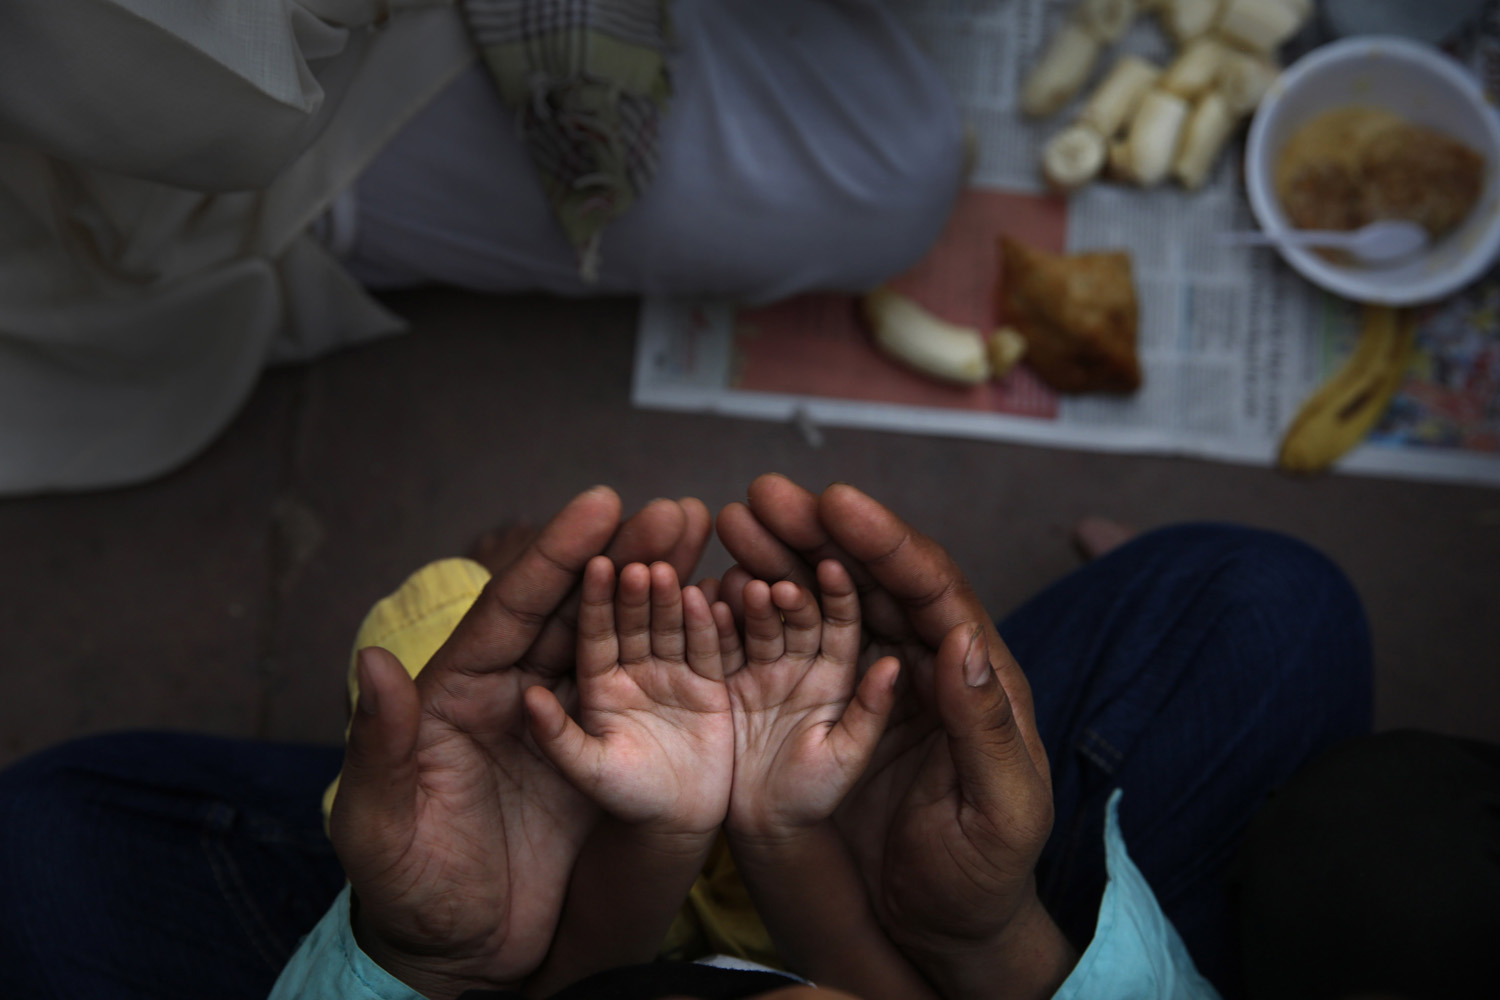 Jun. 30, 2014. An Indian Muslim father holds the hands of his daughter in his palms and prays before  breaking fast on the first day of holy month Ramadan at the Jama Mosque in New Delhi, India.